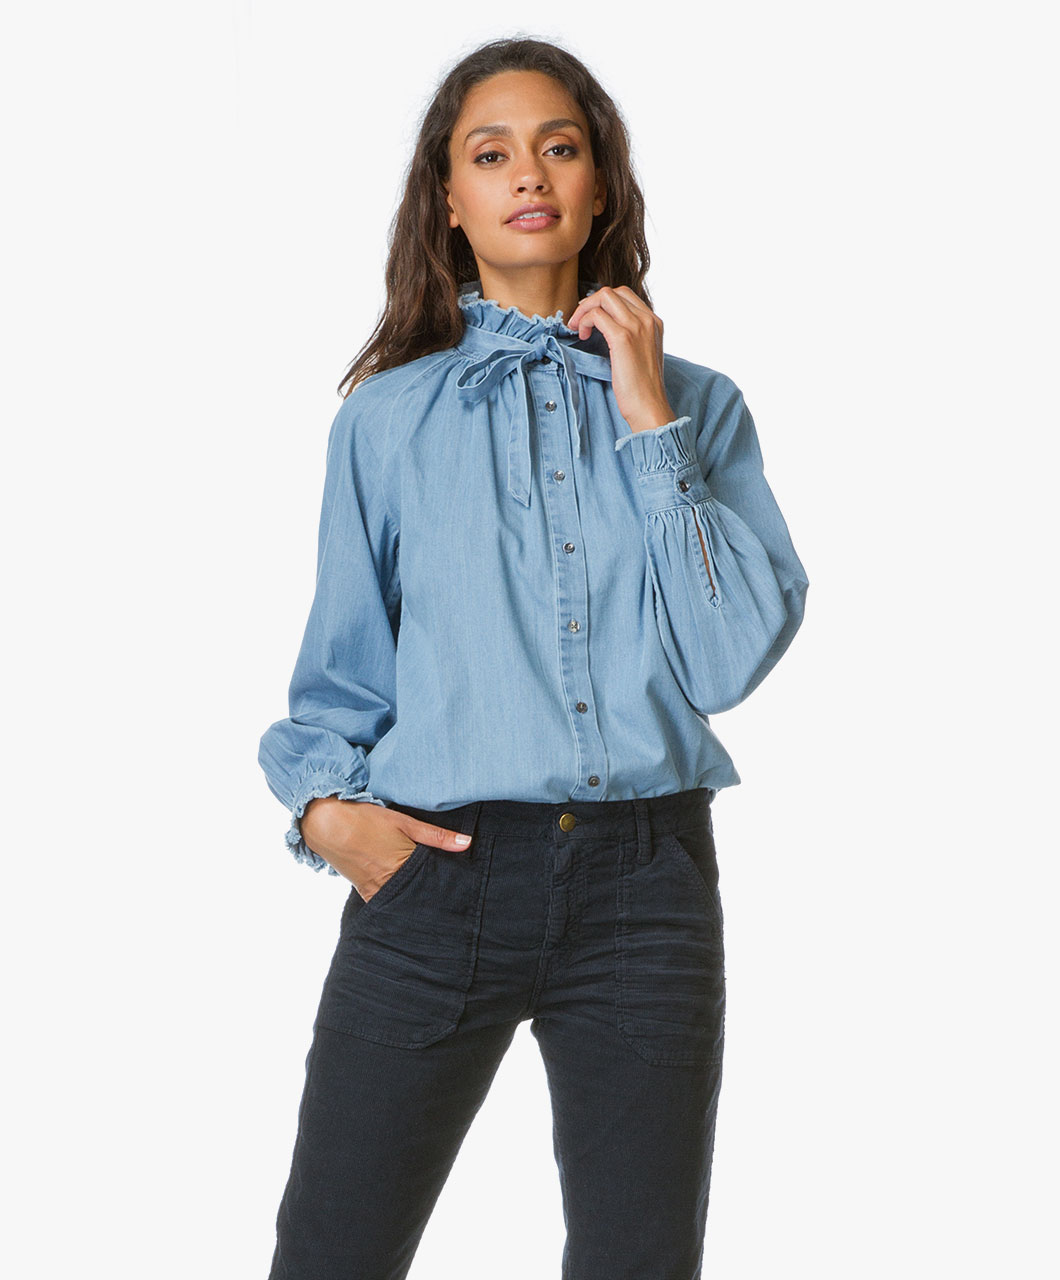 Looking for men's and women's jeans including skinny, slim, ripped, and more? Shop the best styles of jeans for men and women at PacSun Denim and enjoy free shipping on orders over $50!